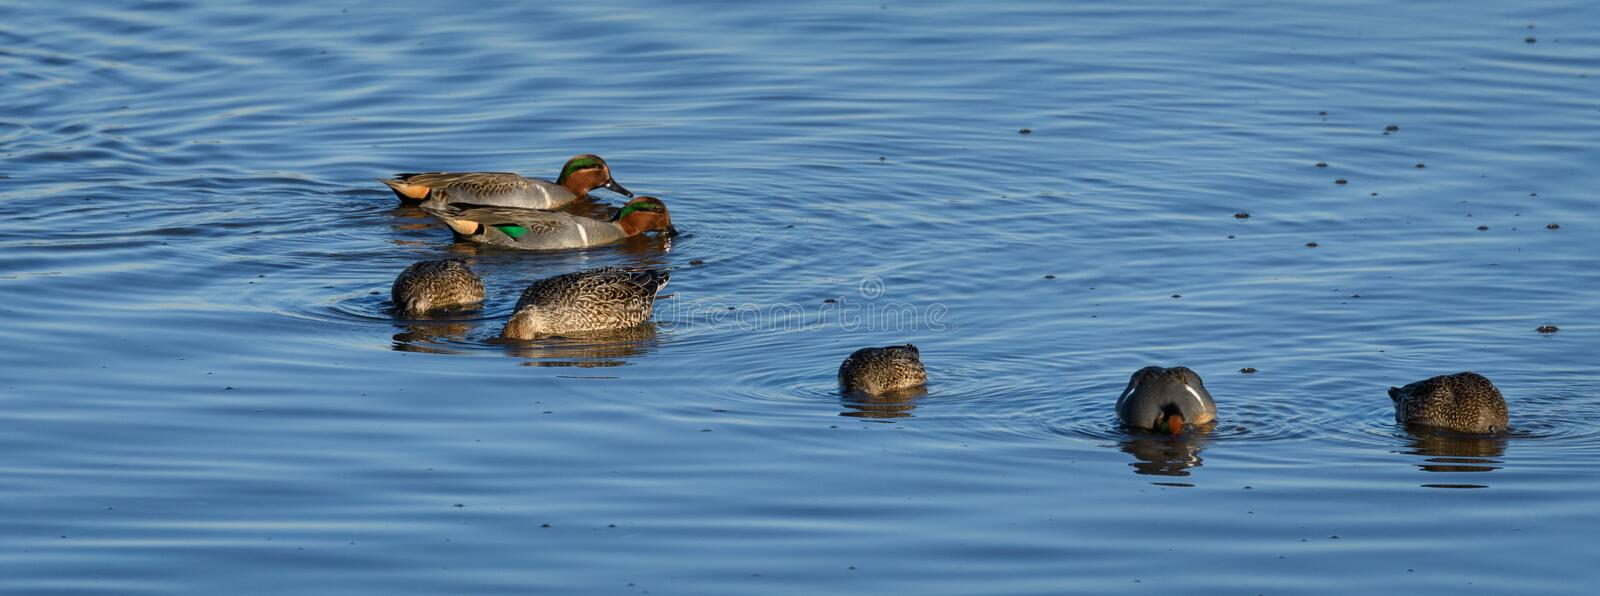 Flock of male and female Green-winged Teal ducks swimming and feeding in the sea water royalty free stock photos